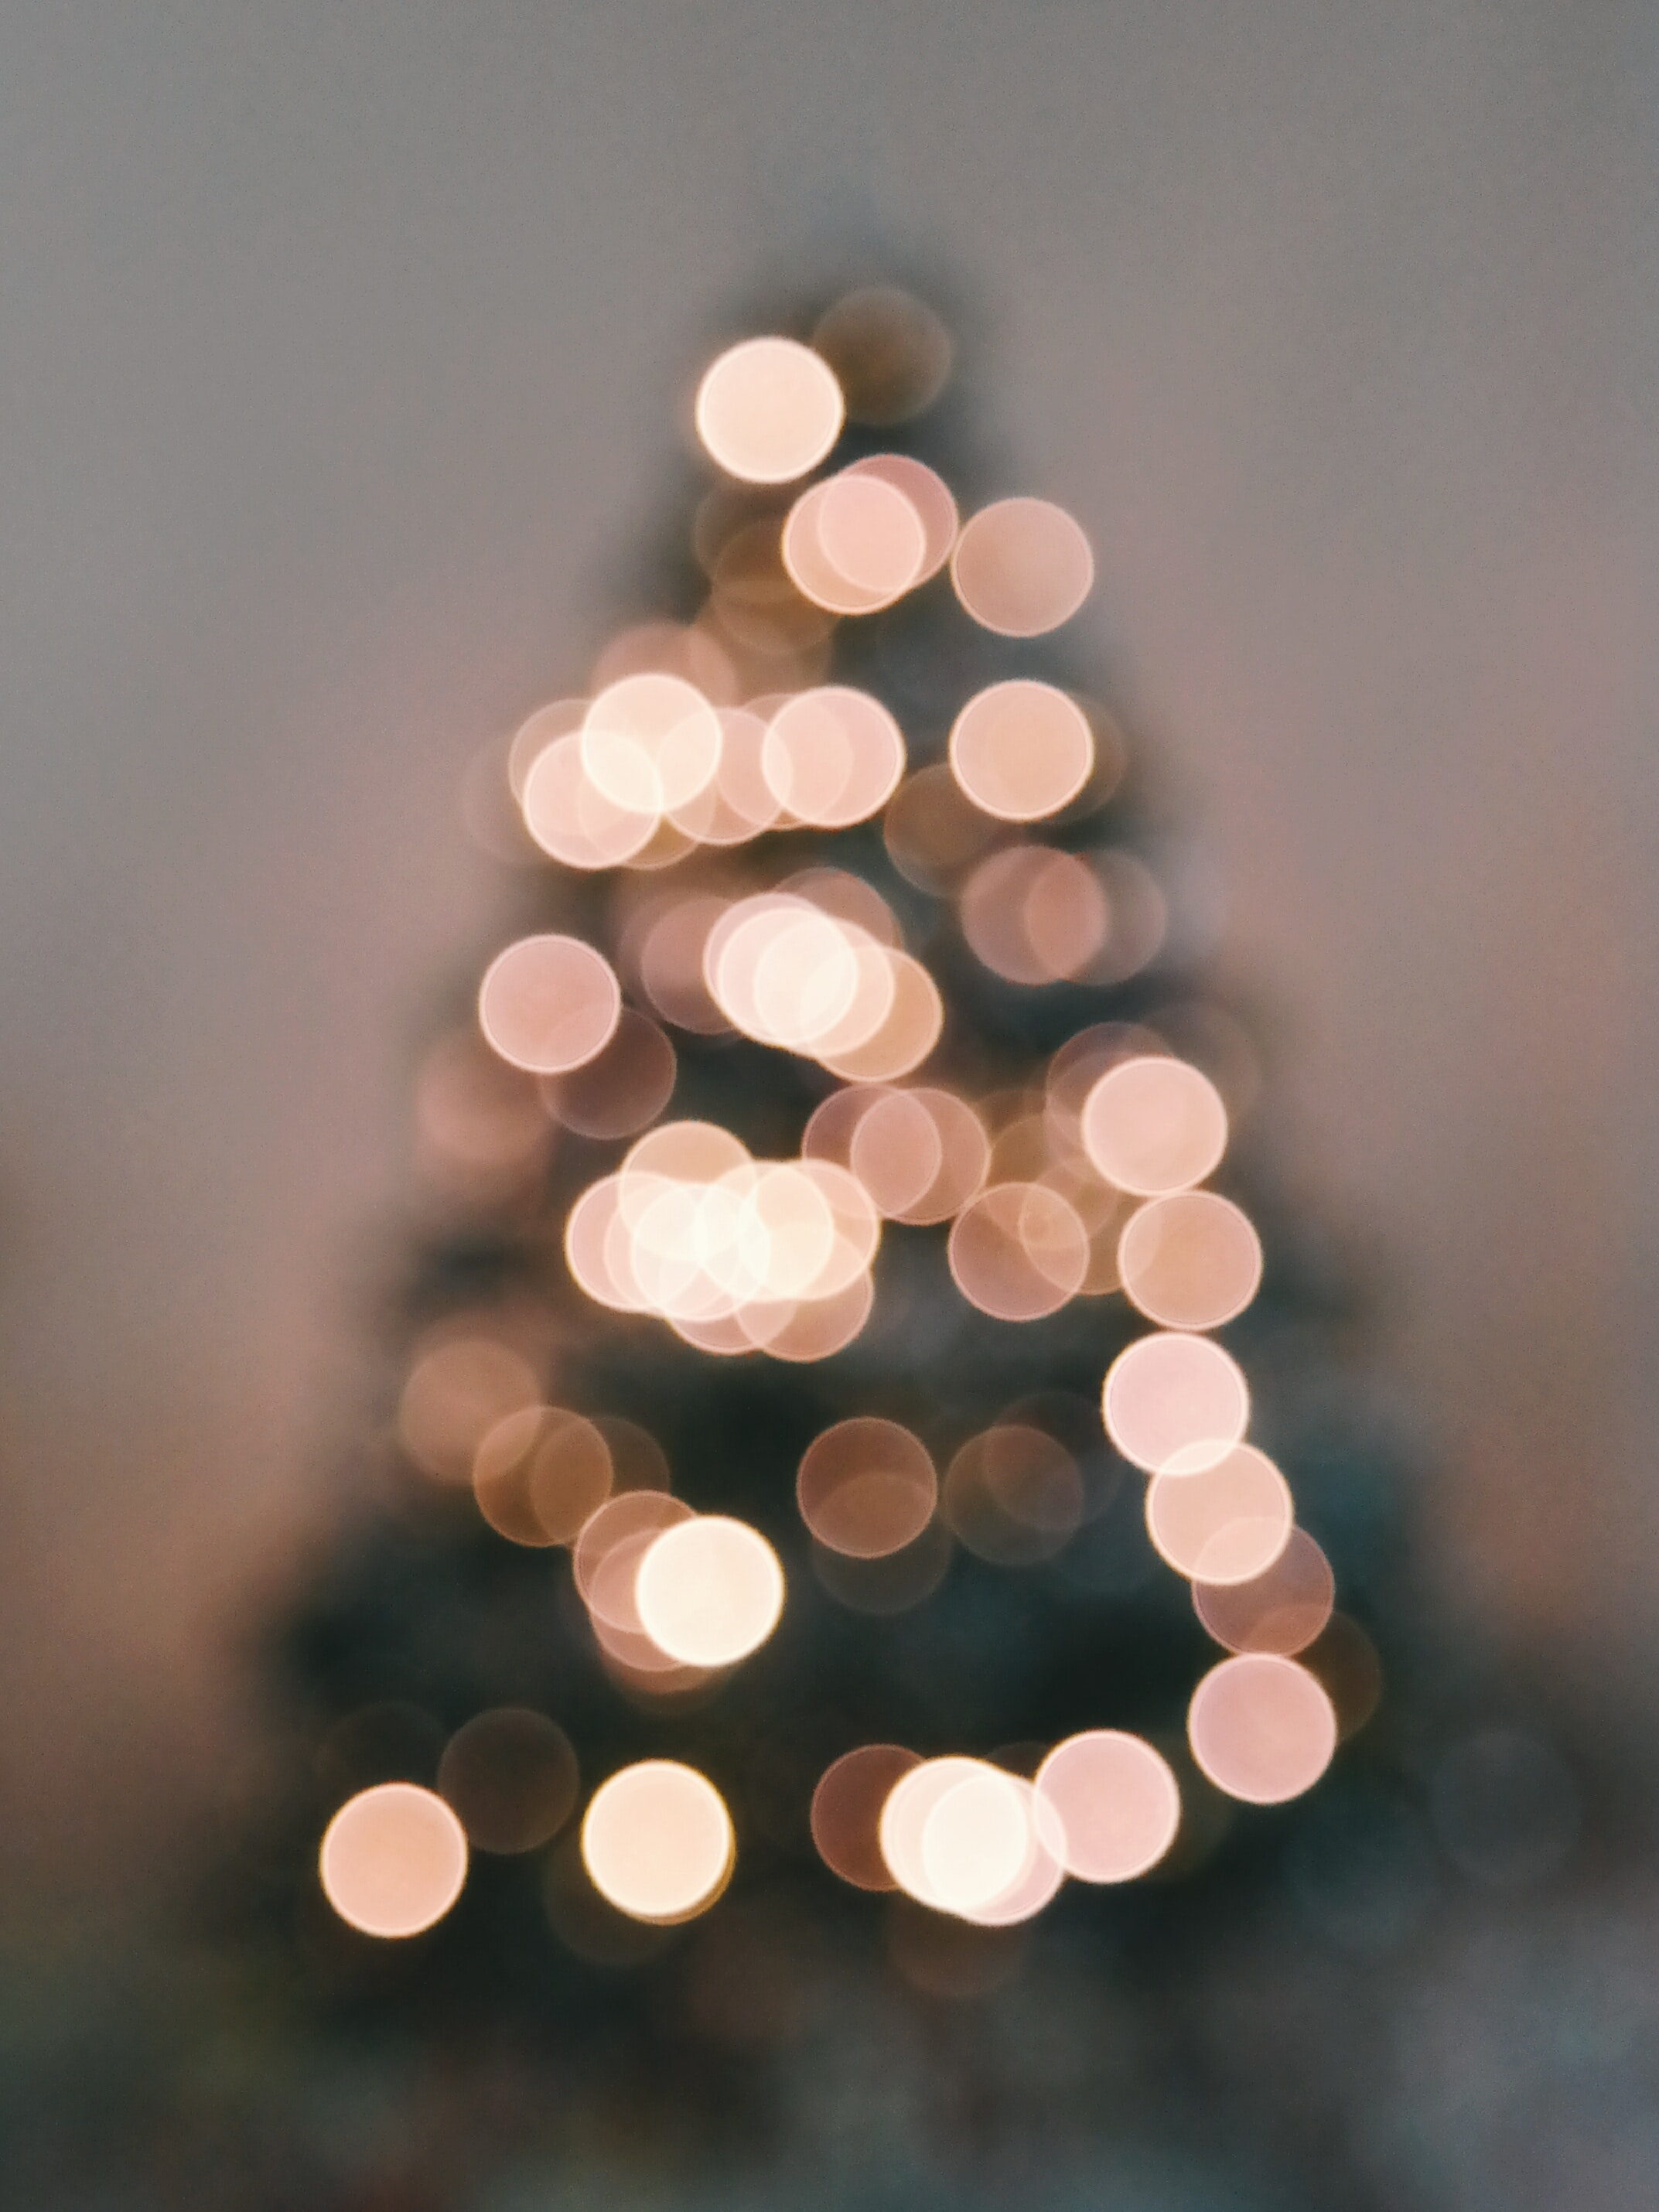 christmas tree aesthetic wallpapers top free christmas tree aesthetic backgrounds wallpaperaccess christmas tree aesthetic wallpapers